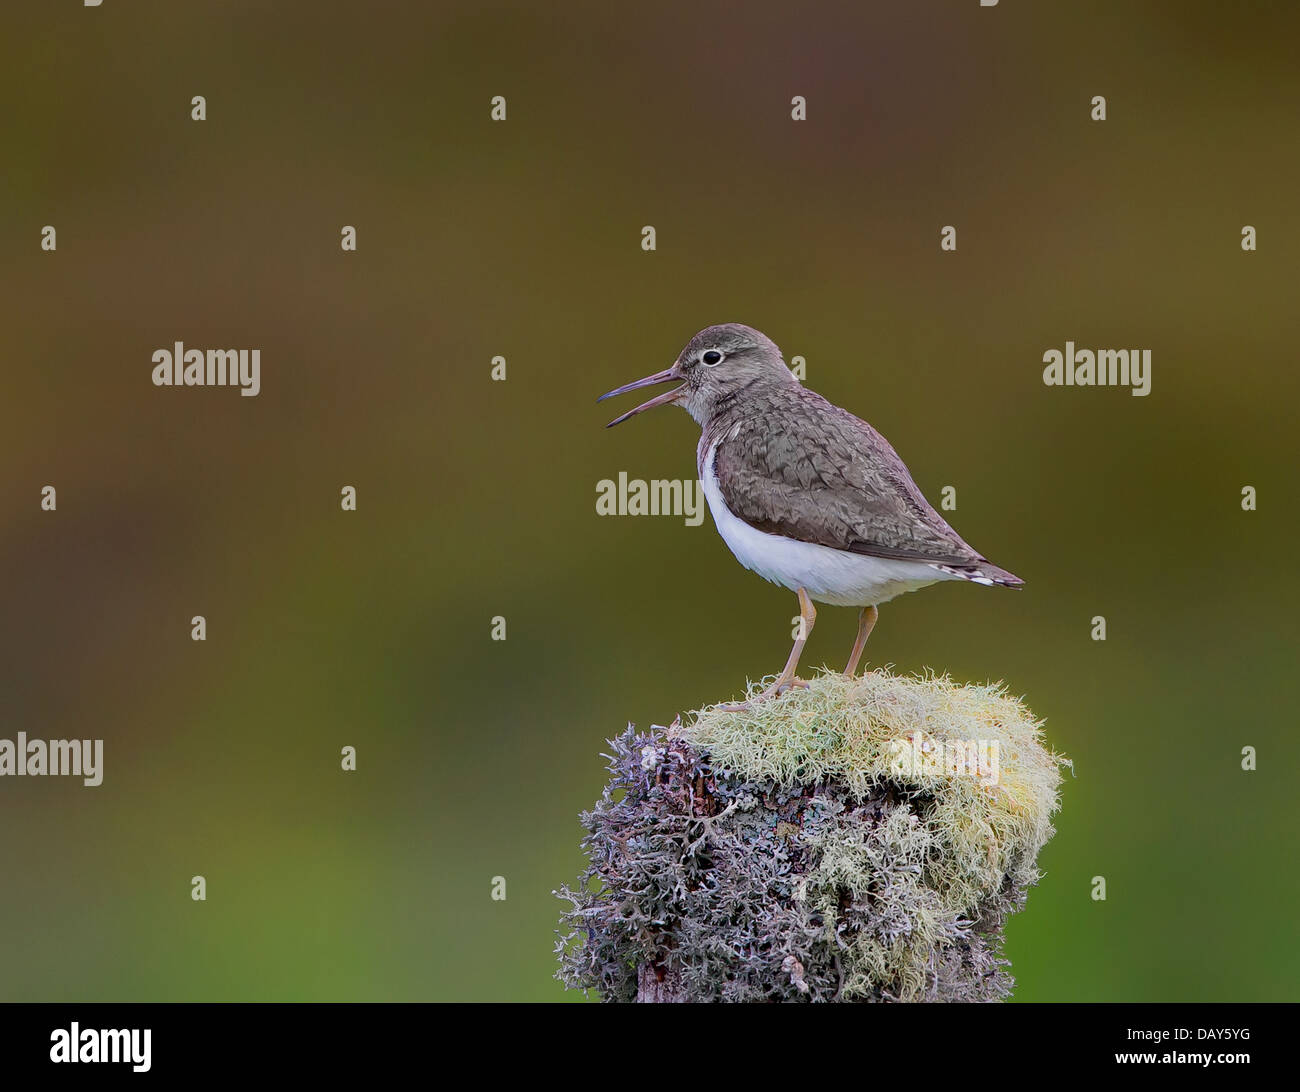 Common Sandpiper sitting on a fencepost in sleeping pose - Stock Image